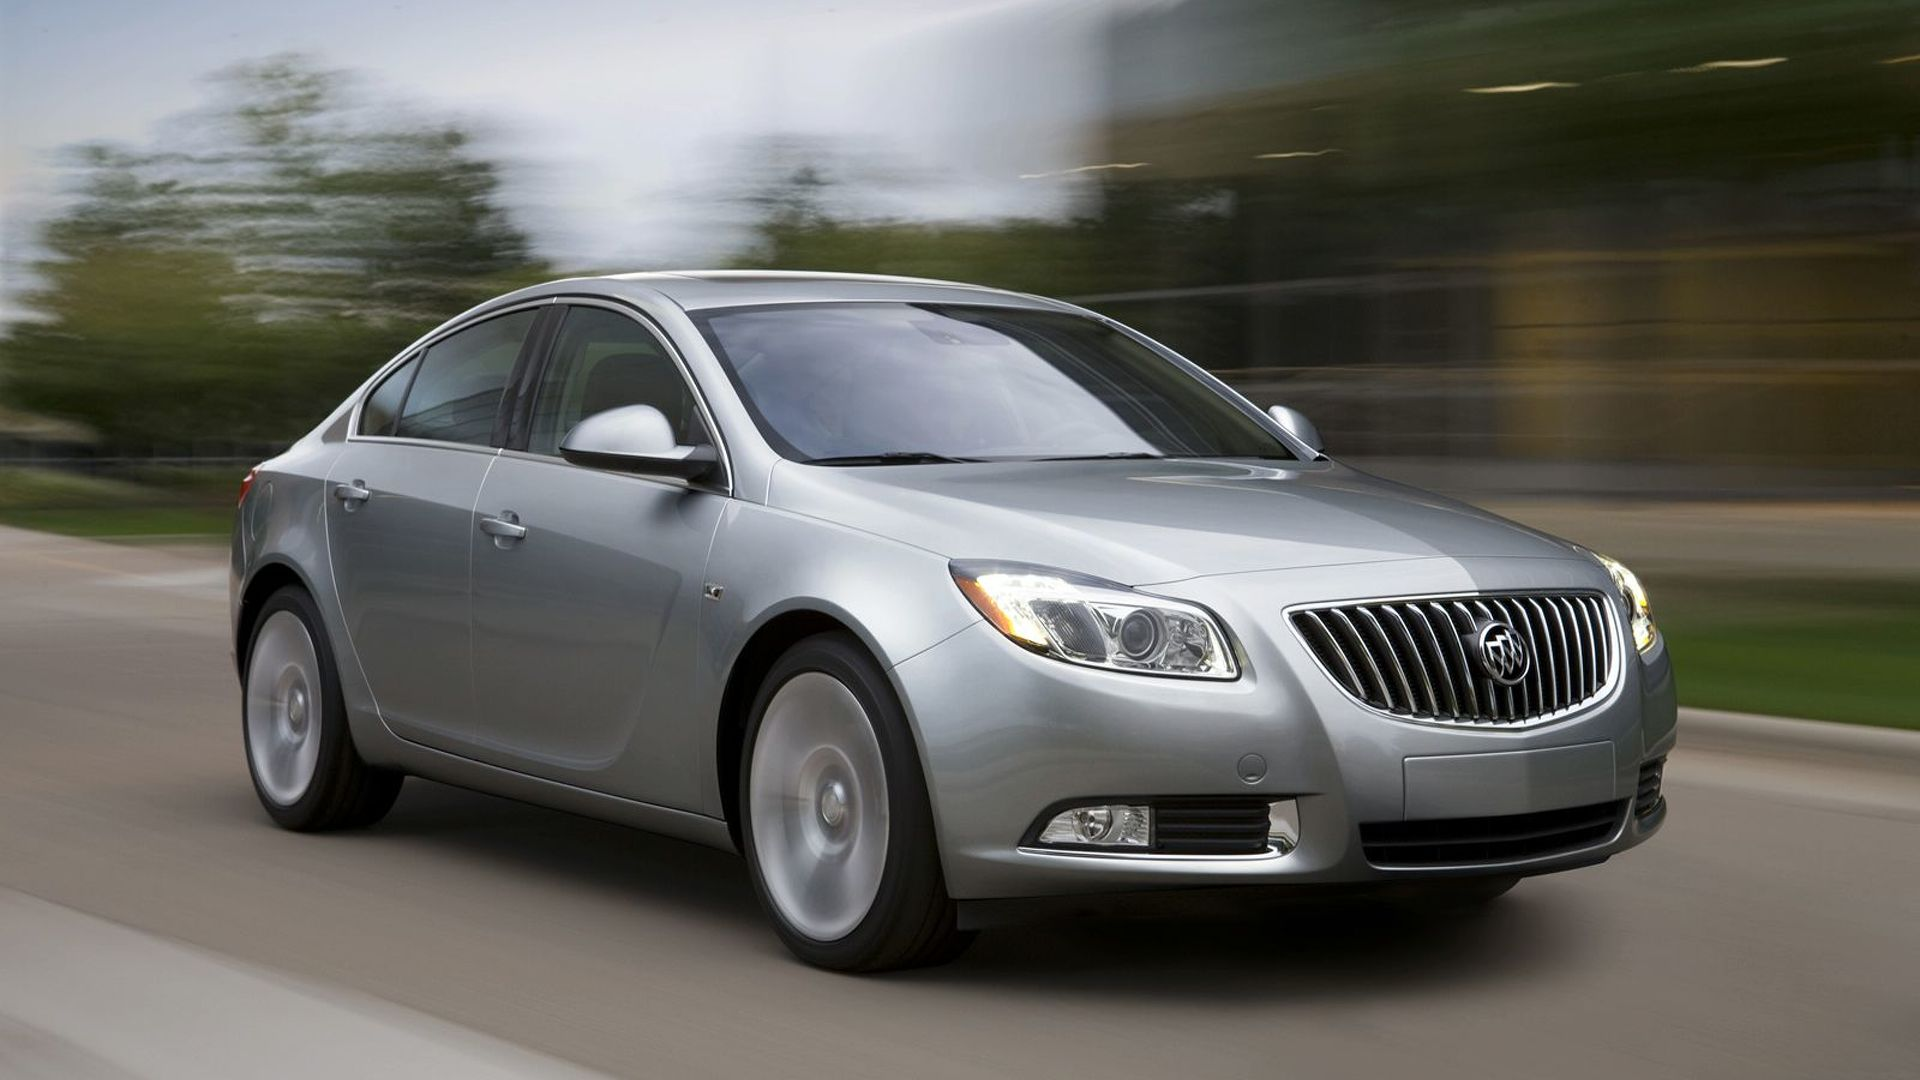 2011 Buick Regal Revealed